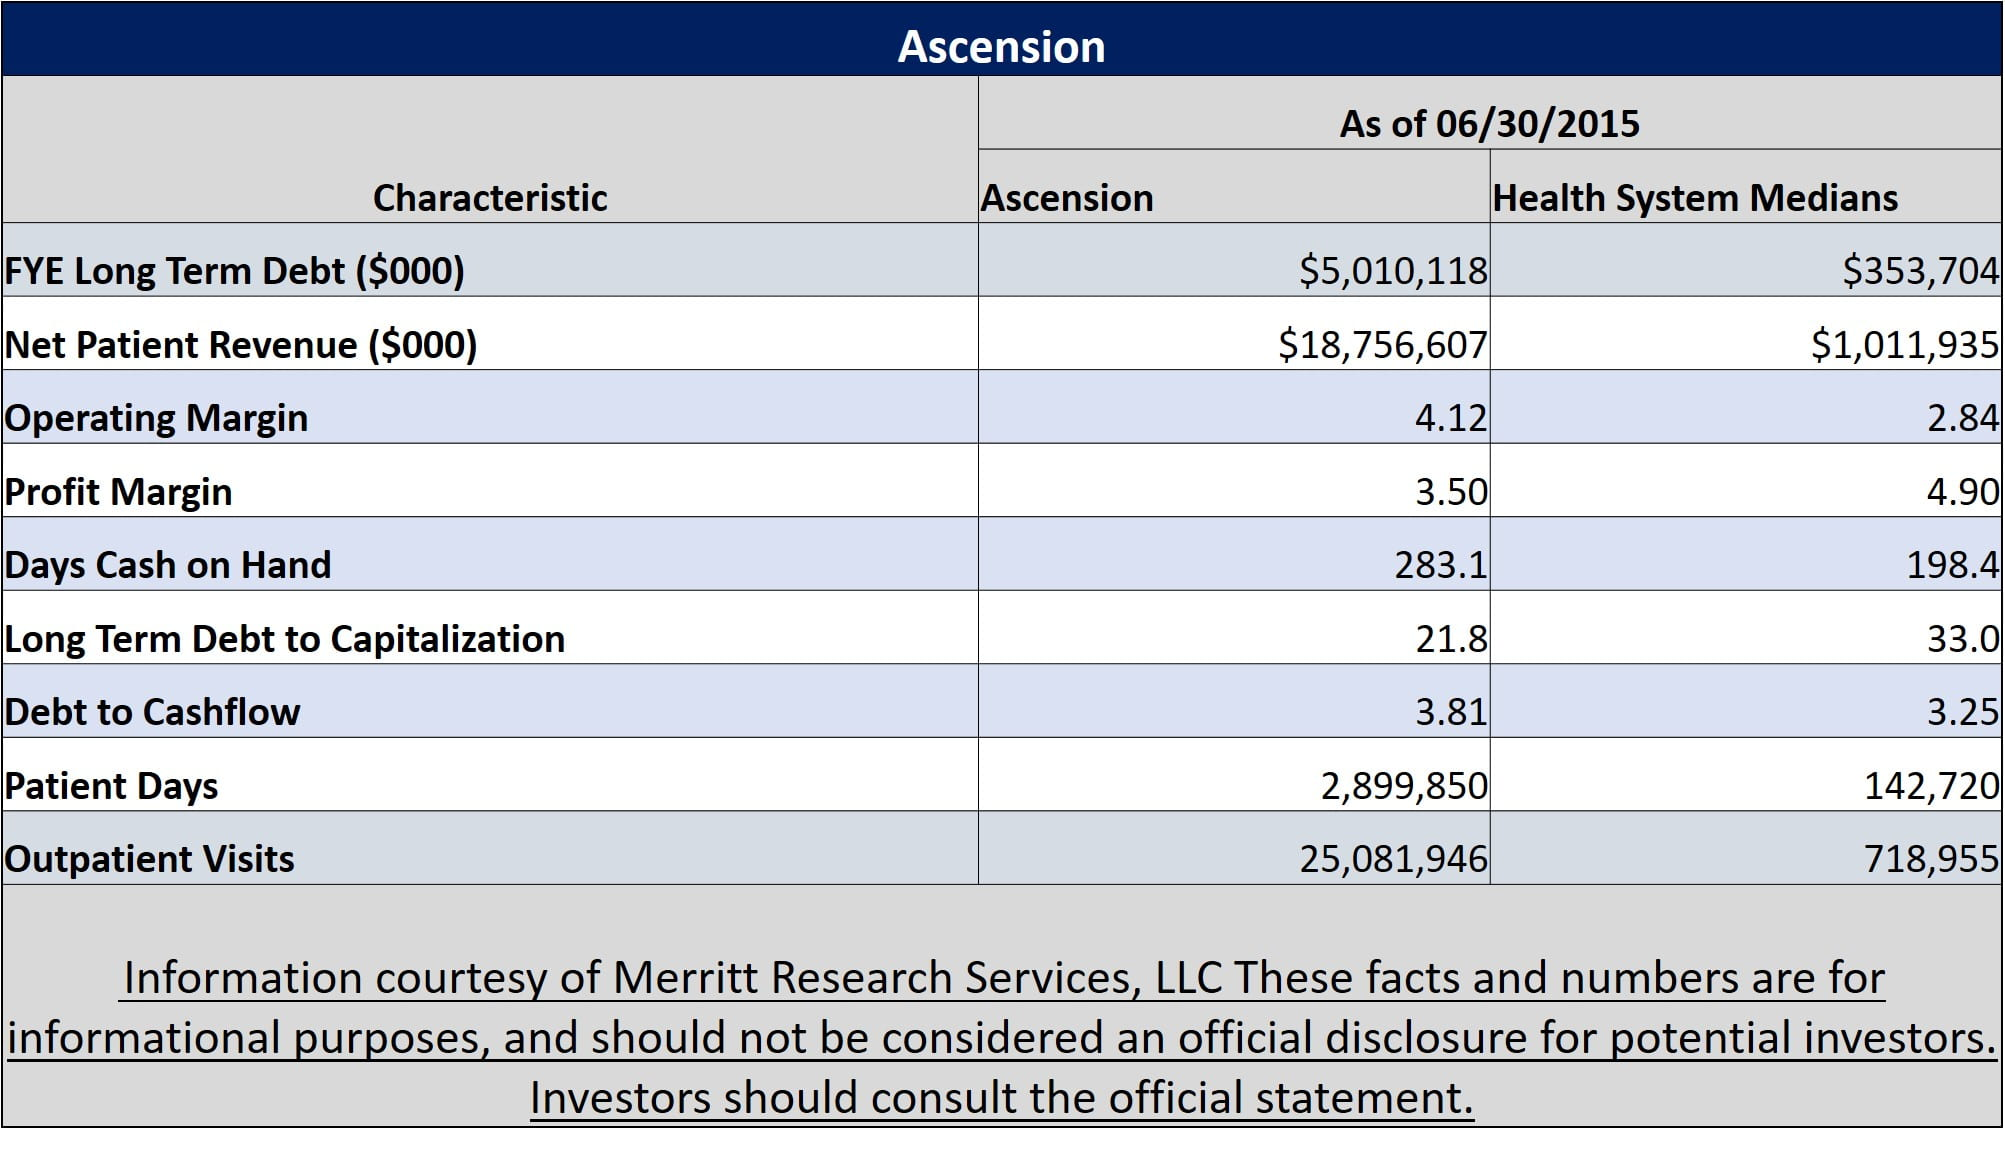 Municipal Bond Featured Snapshot - Ascension Health